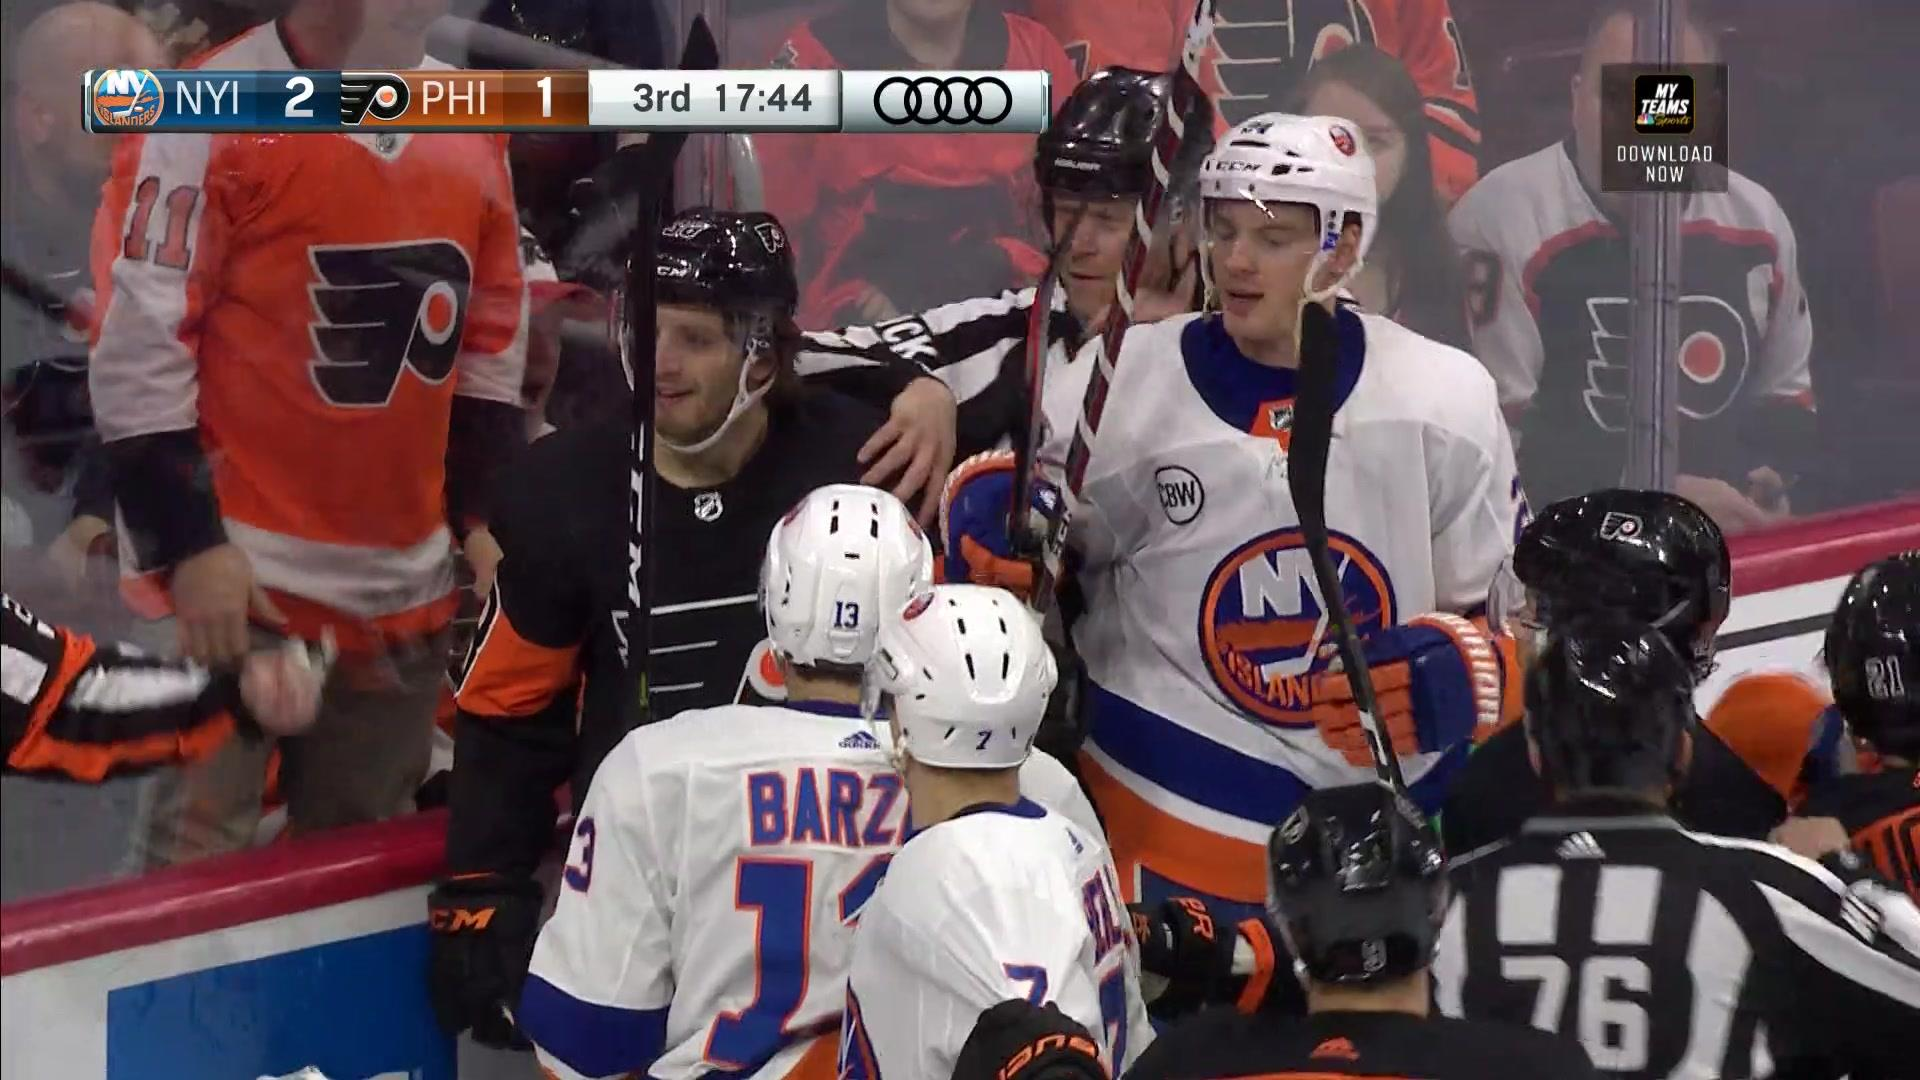 More questionable calls early in the third period vs. Islanders